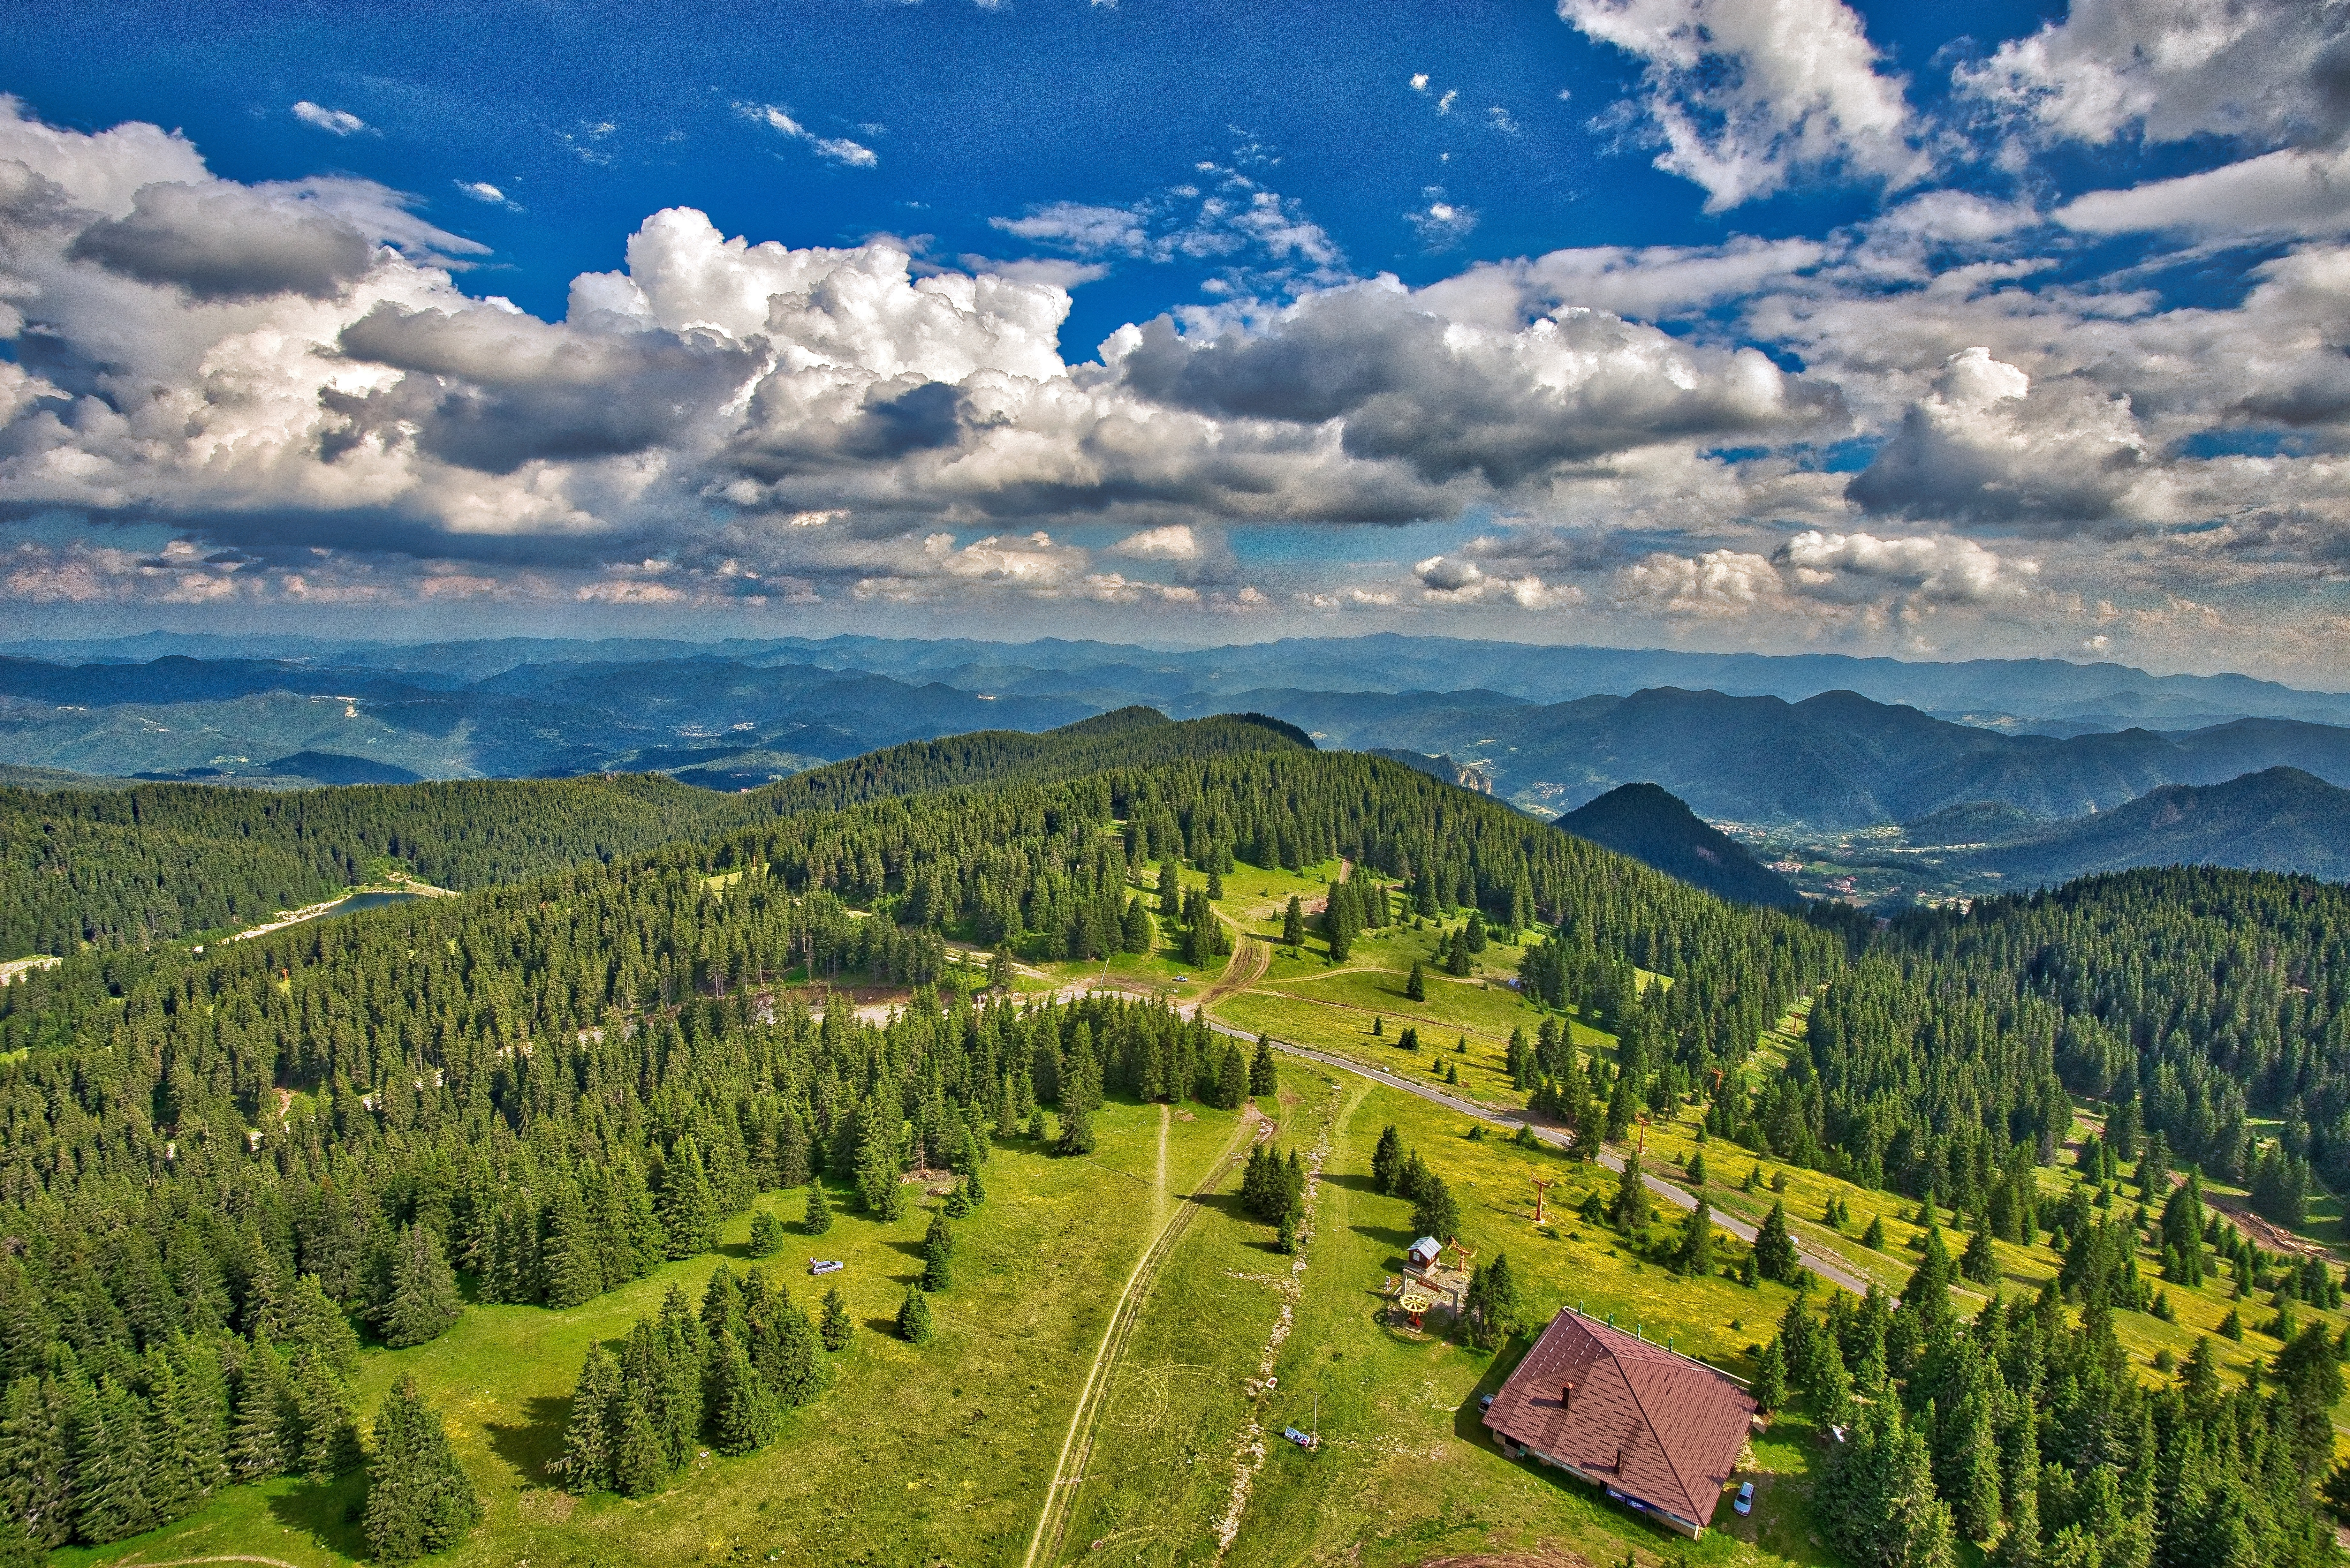 Scenic View of Rural Landscape, Clouds, Outdoor, Outdoors, Picturesque, HQ Photo